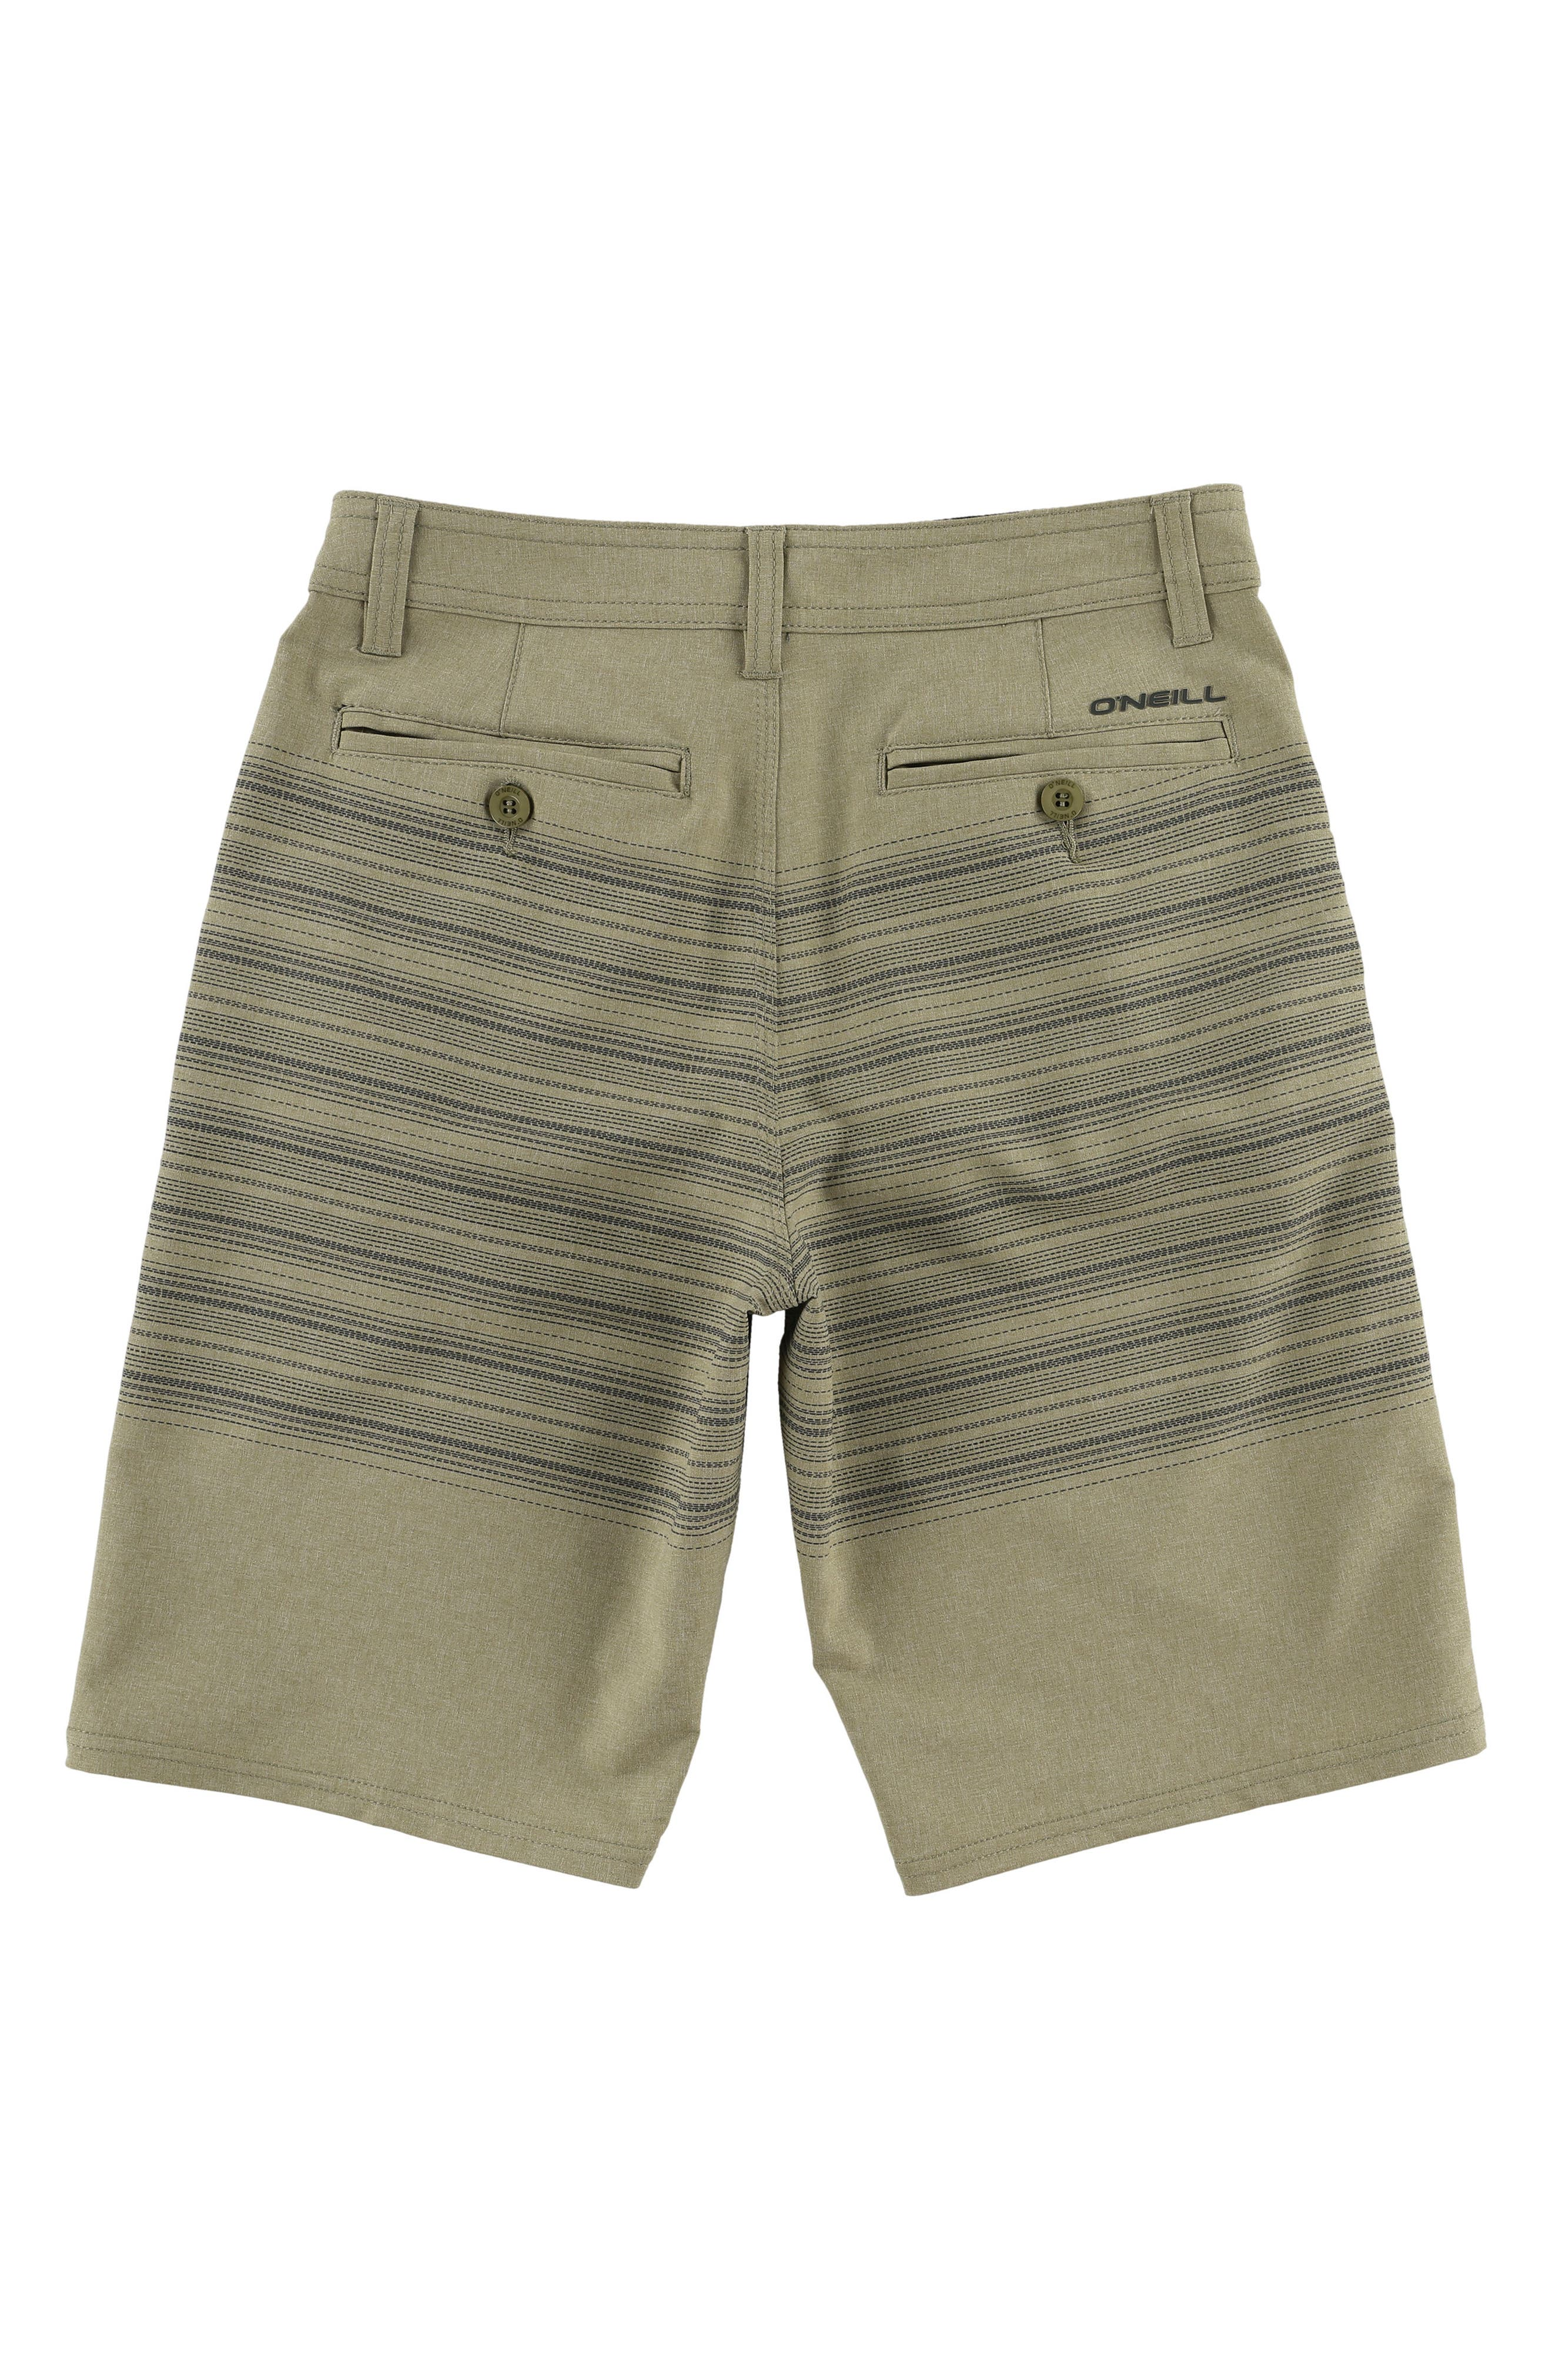 Loaded Schematic Hybrid Board Shorts,                             Alternate thumbnail 2, color,                             251